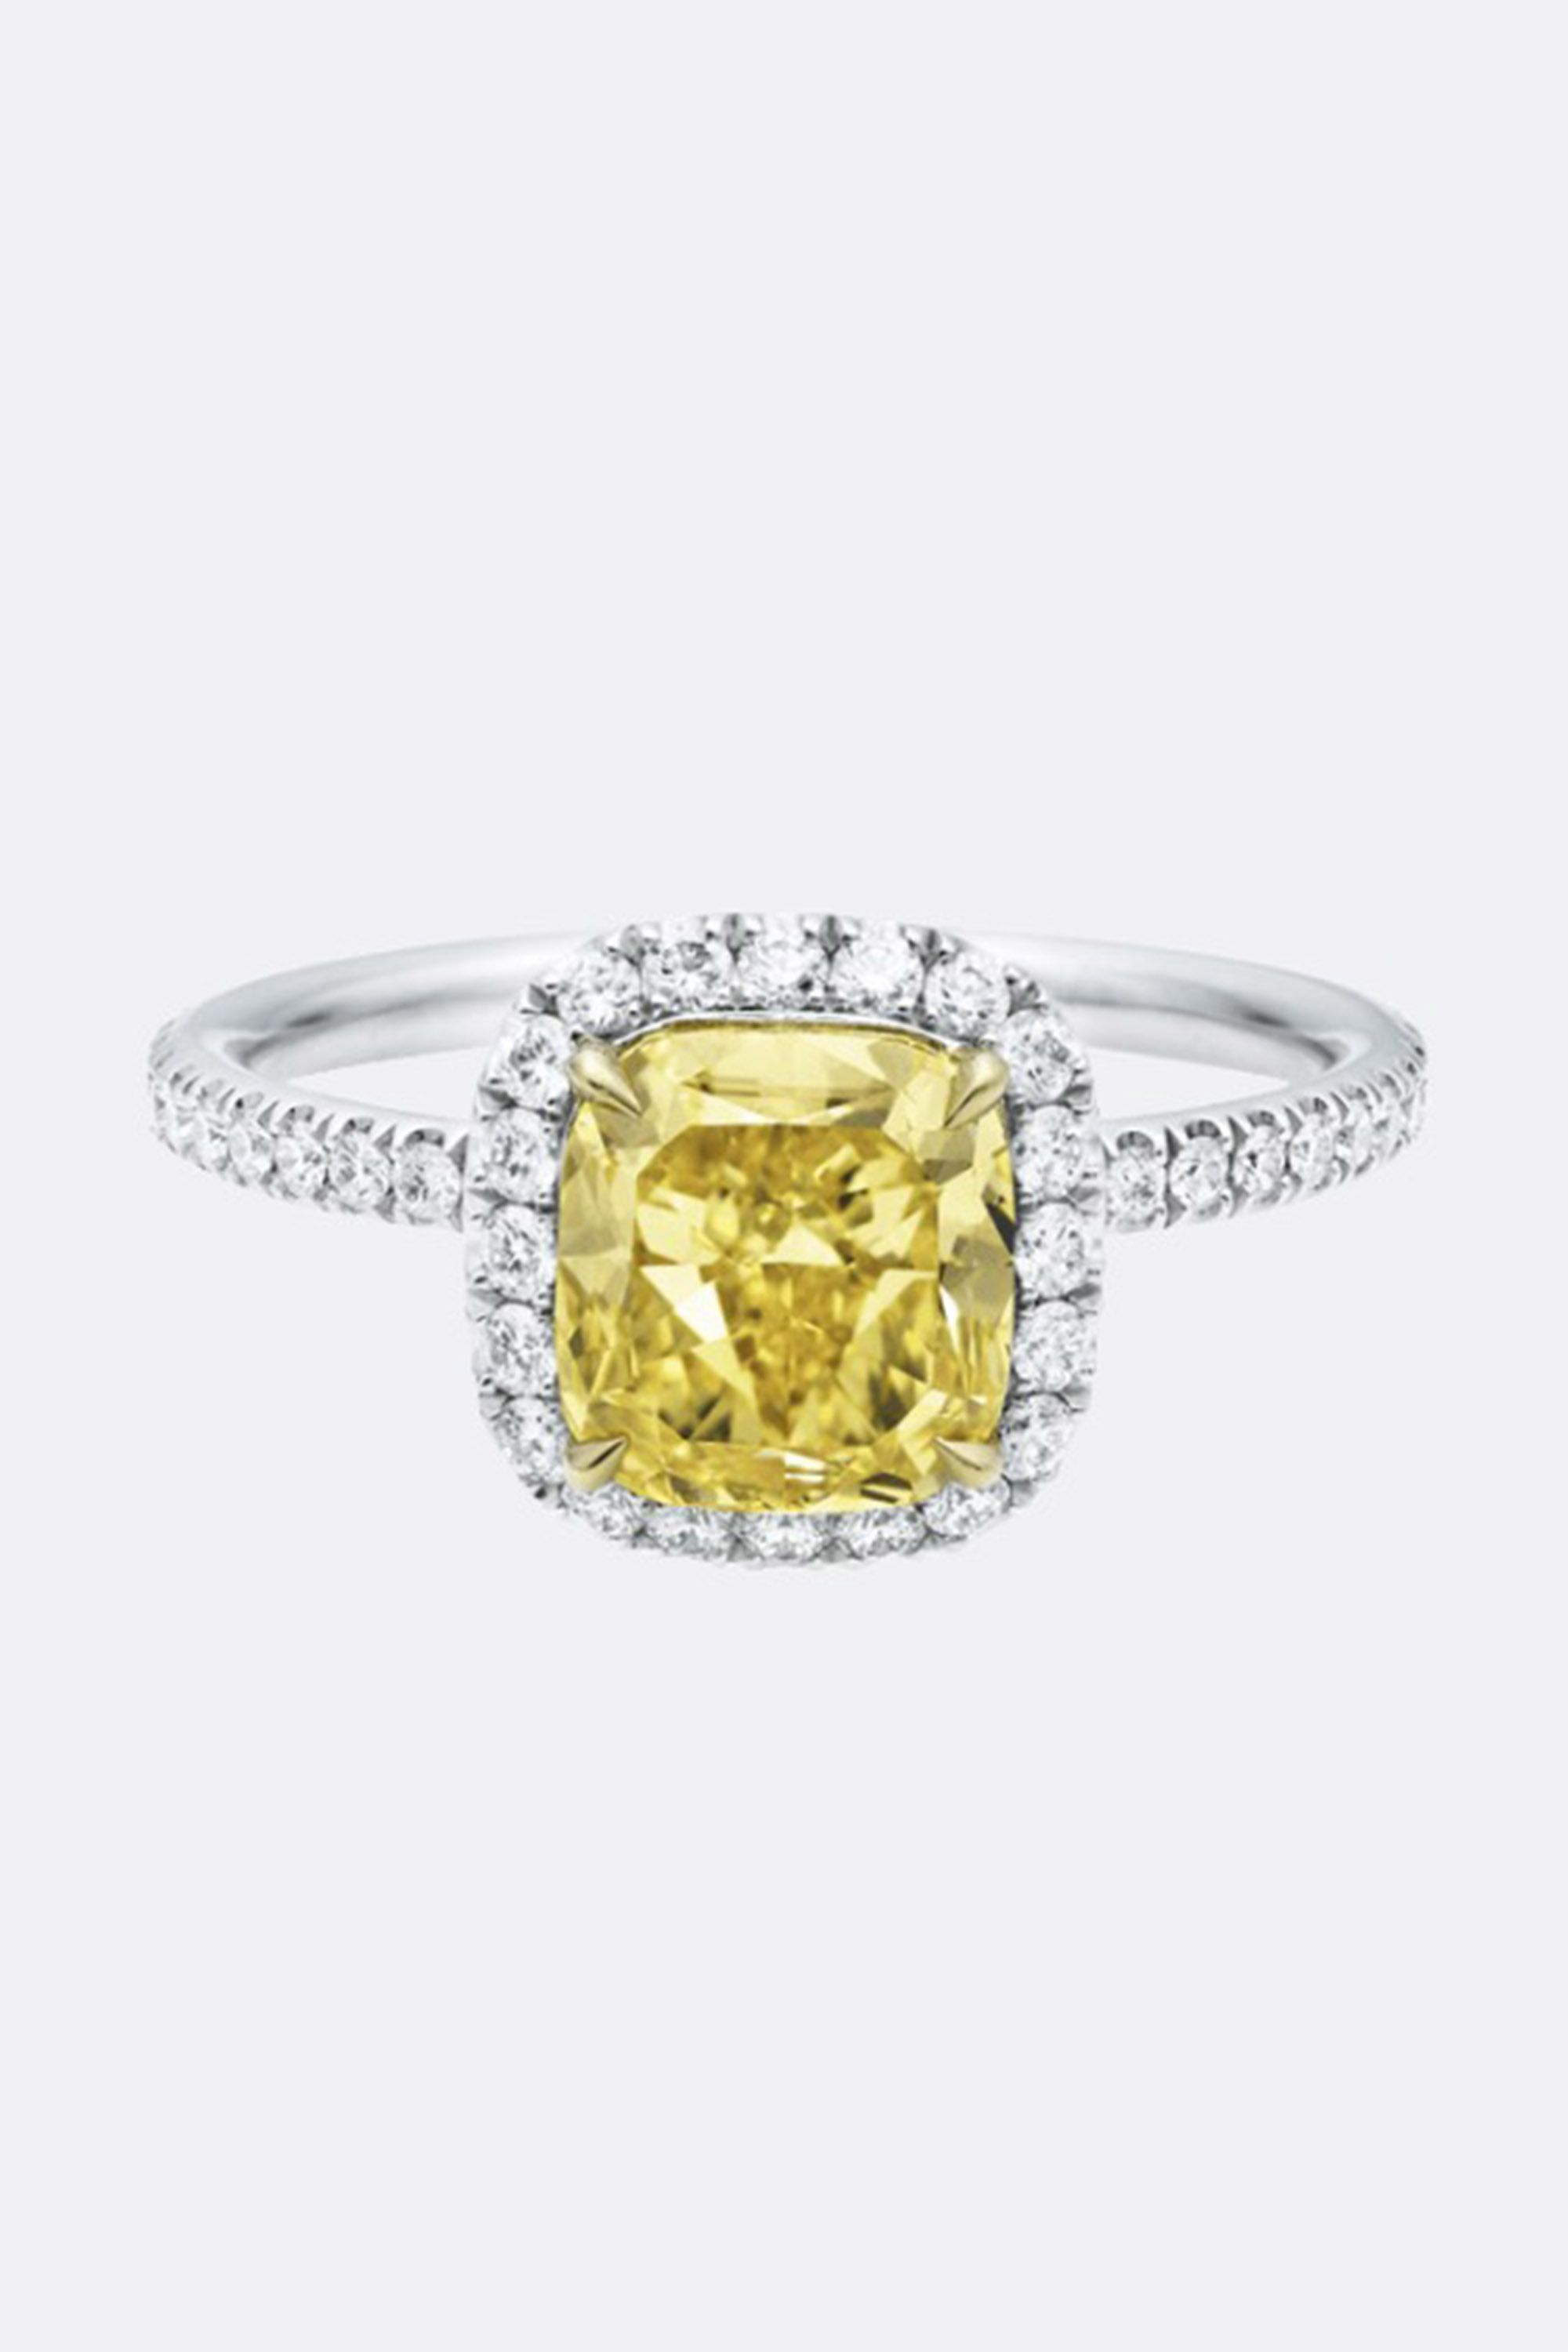 Our Guide To The Best Engagement Rings Designer And Classic